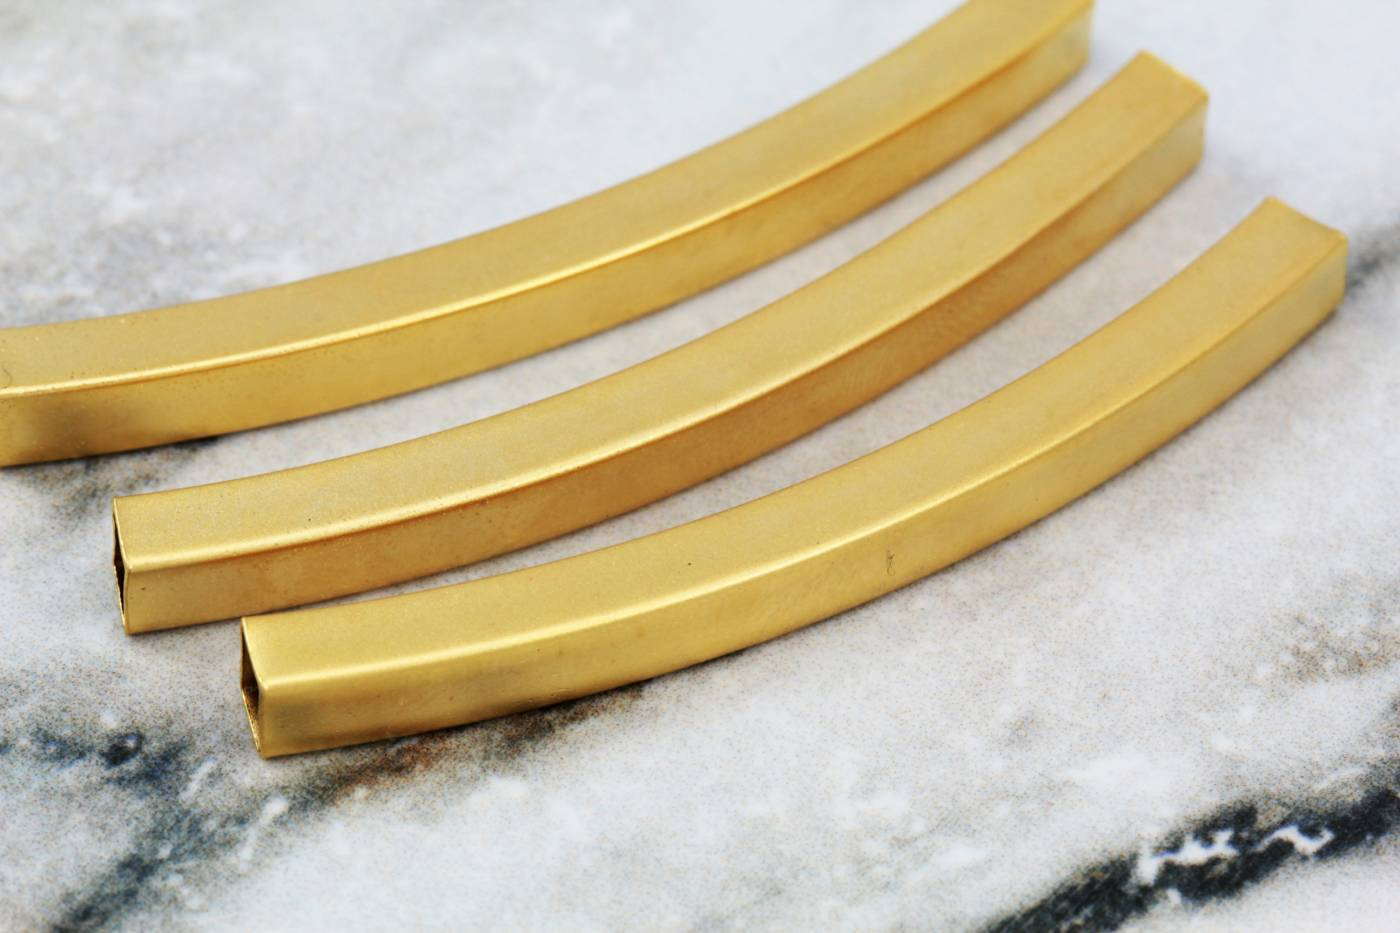 gold-50mm-long-curved-end-bar-charms.jpg